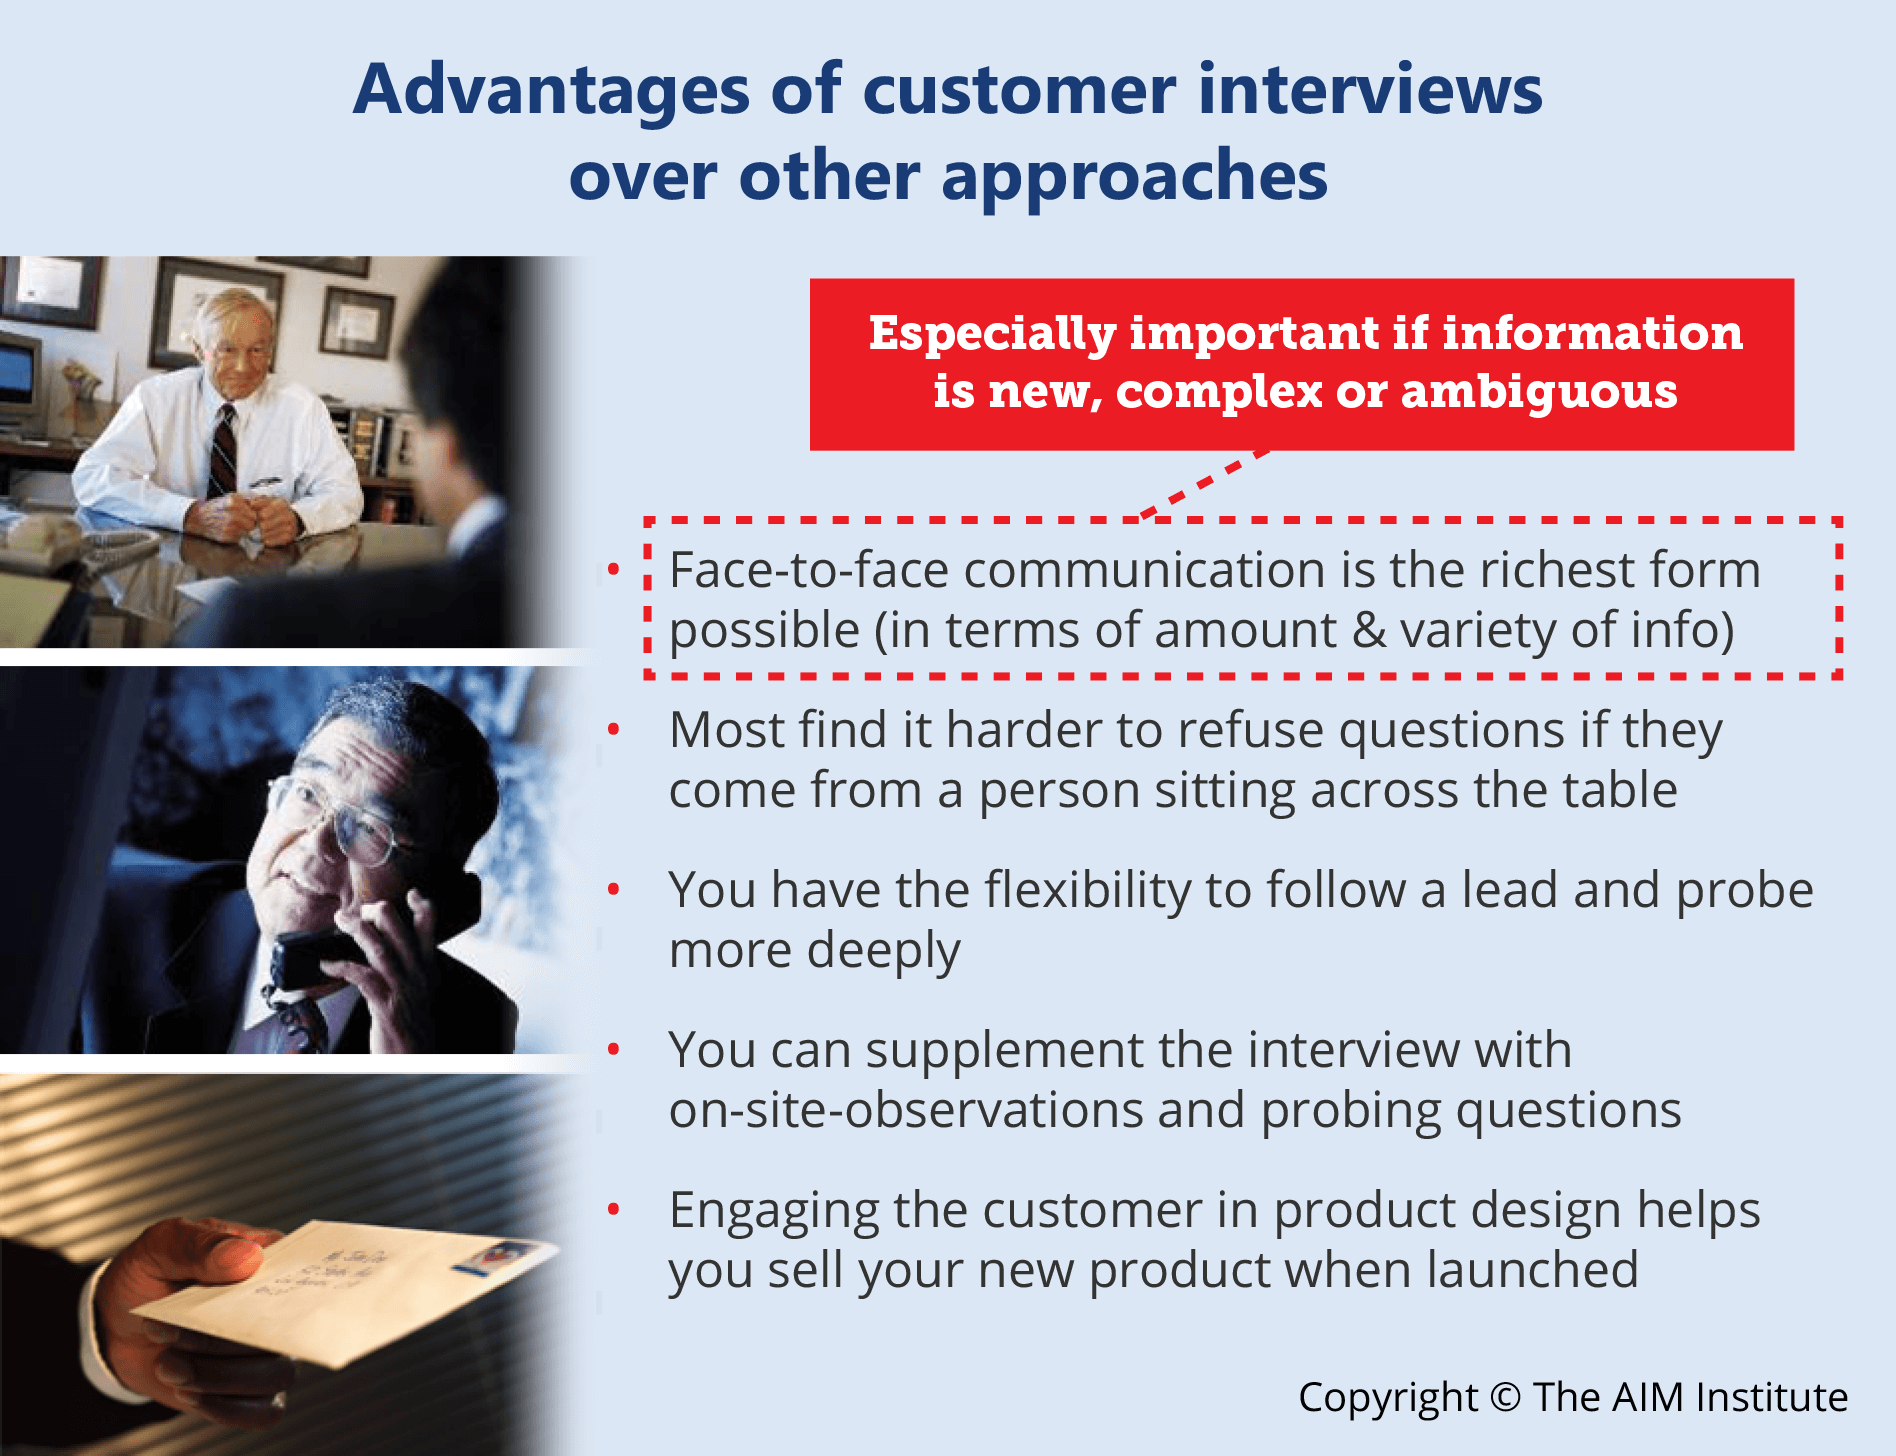 Voice of customer interview advantages